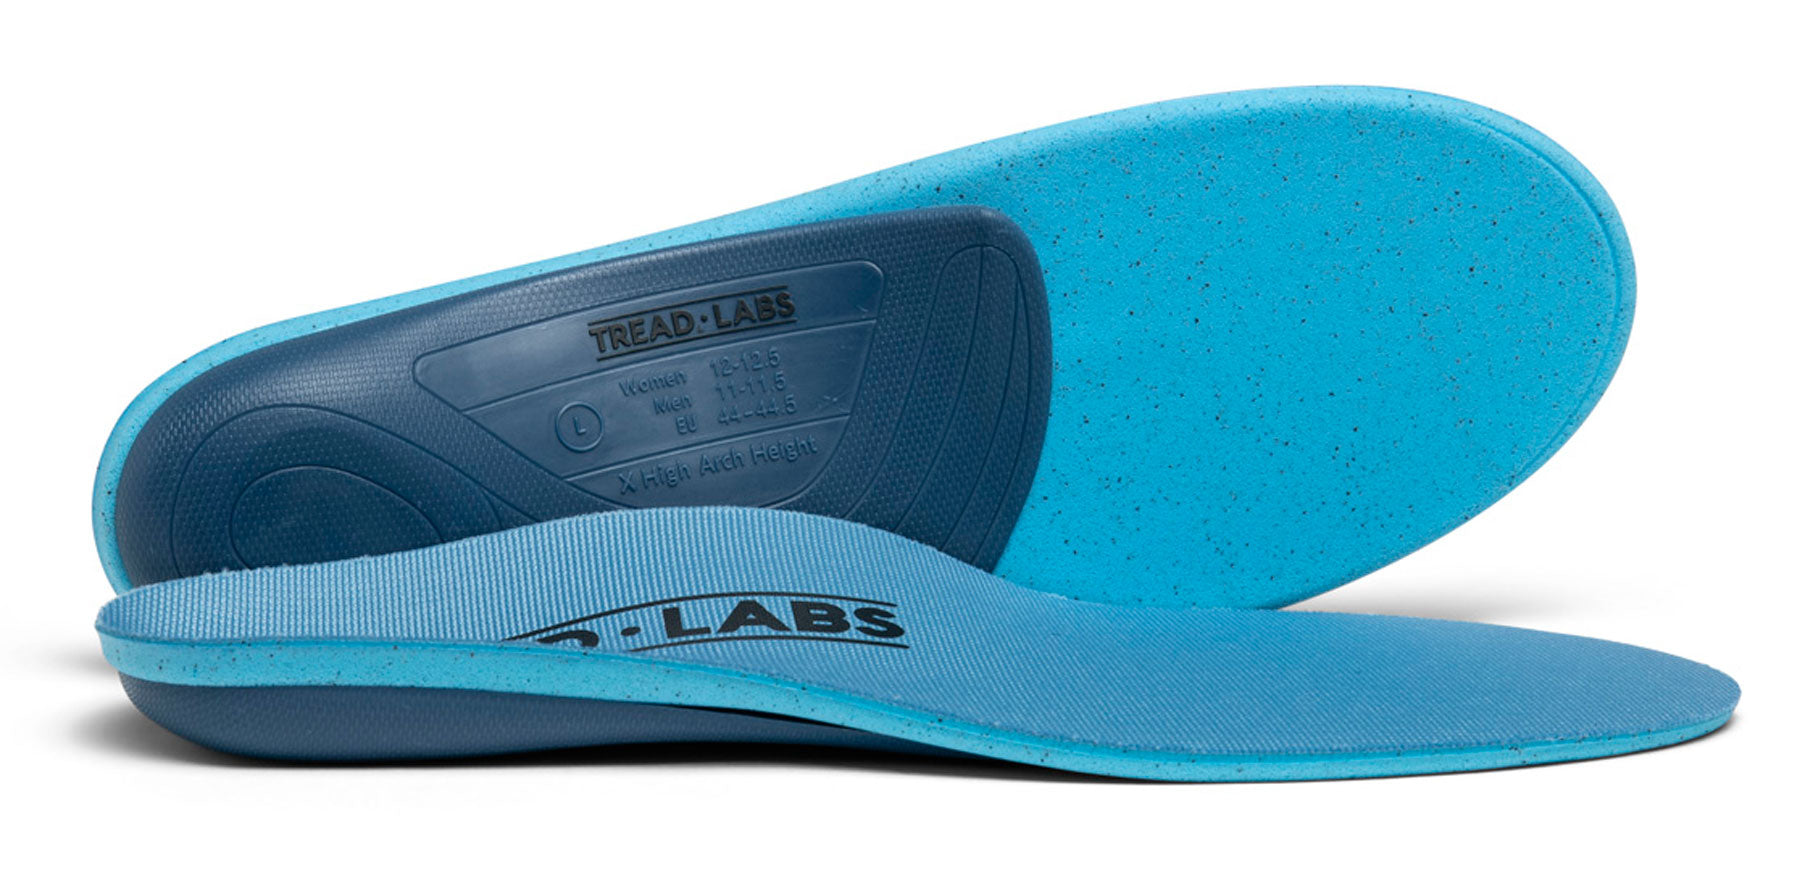 Tread Labs Introduces Ramble, Pace and Dash Insoles